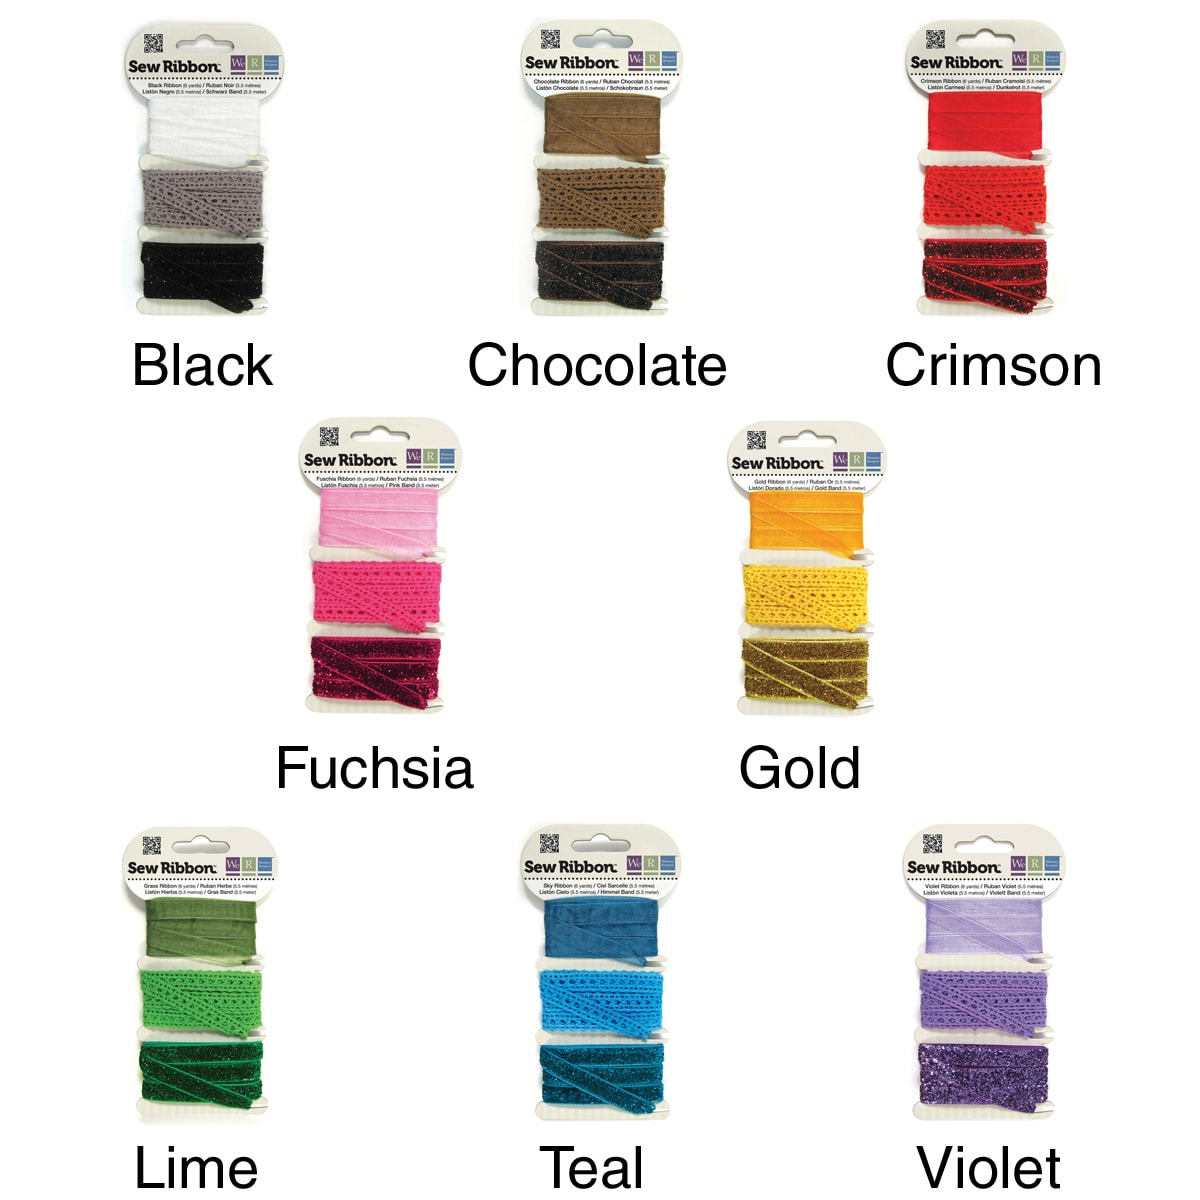 We R Memory Keepers Three-style Sew Ribbon - Six Yards Total/Pkg